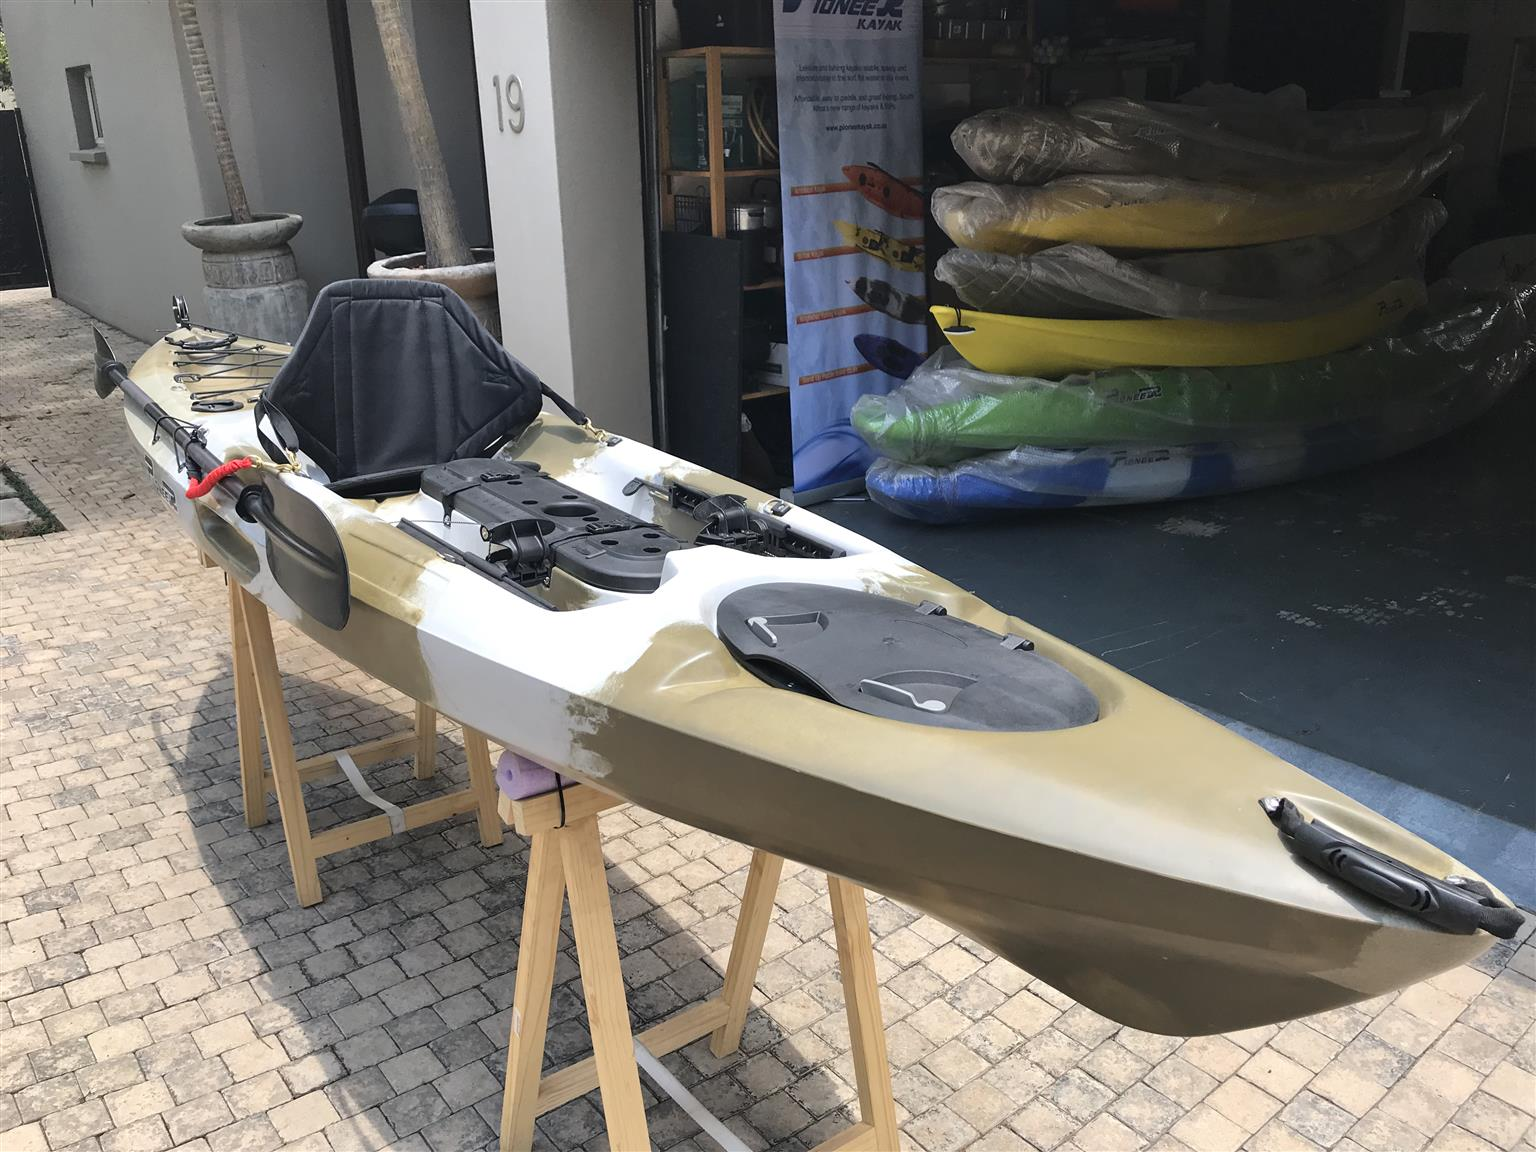 Pioneer Kayak Kingfisher, including seat, paddle, leash and rudder system, BRAND NEW!